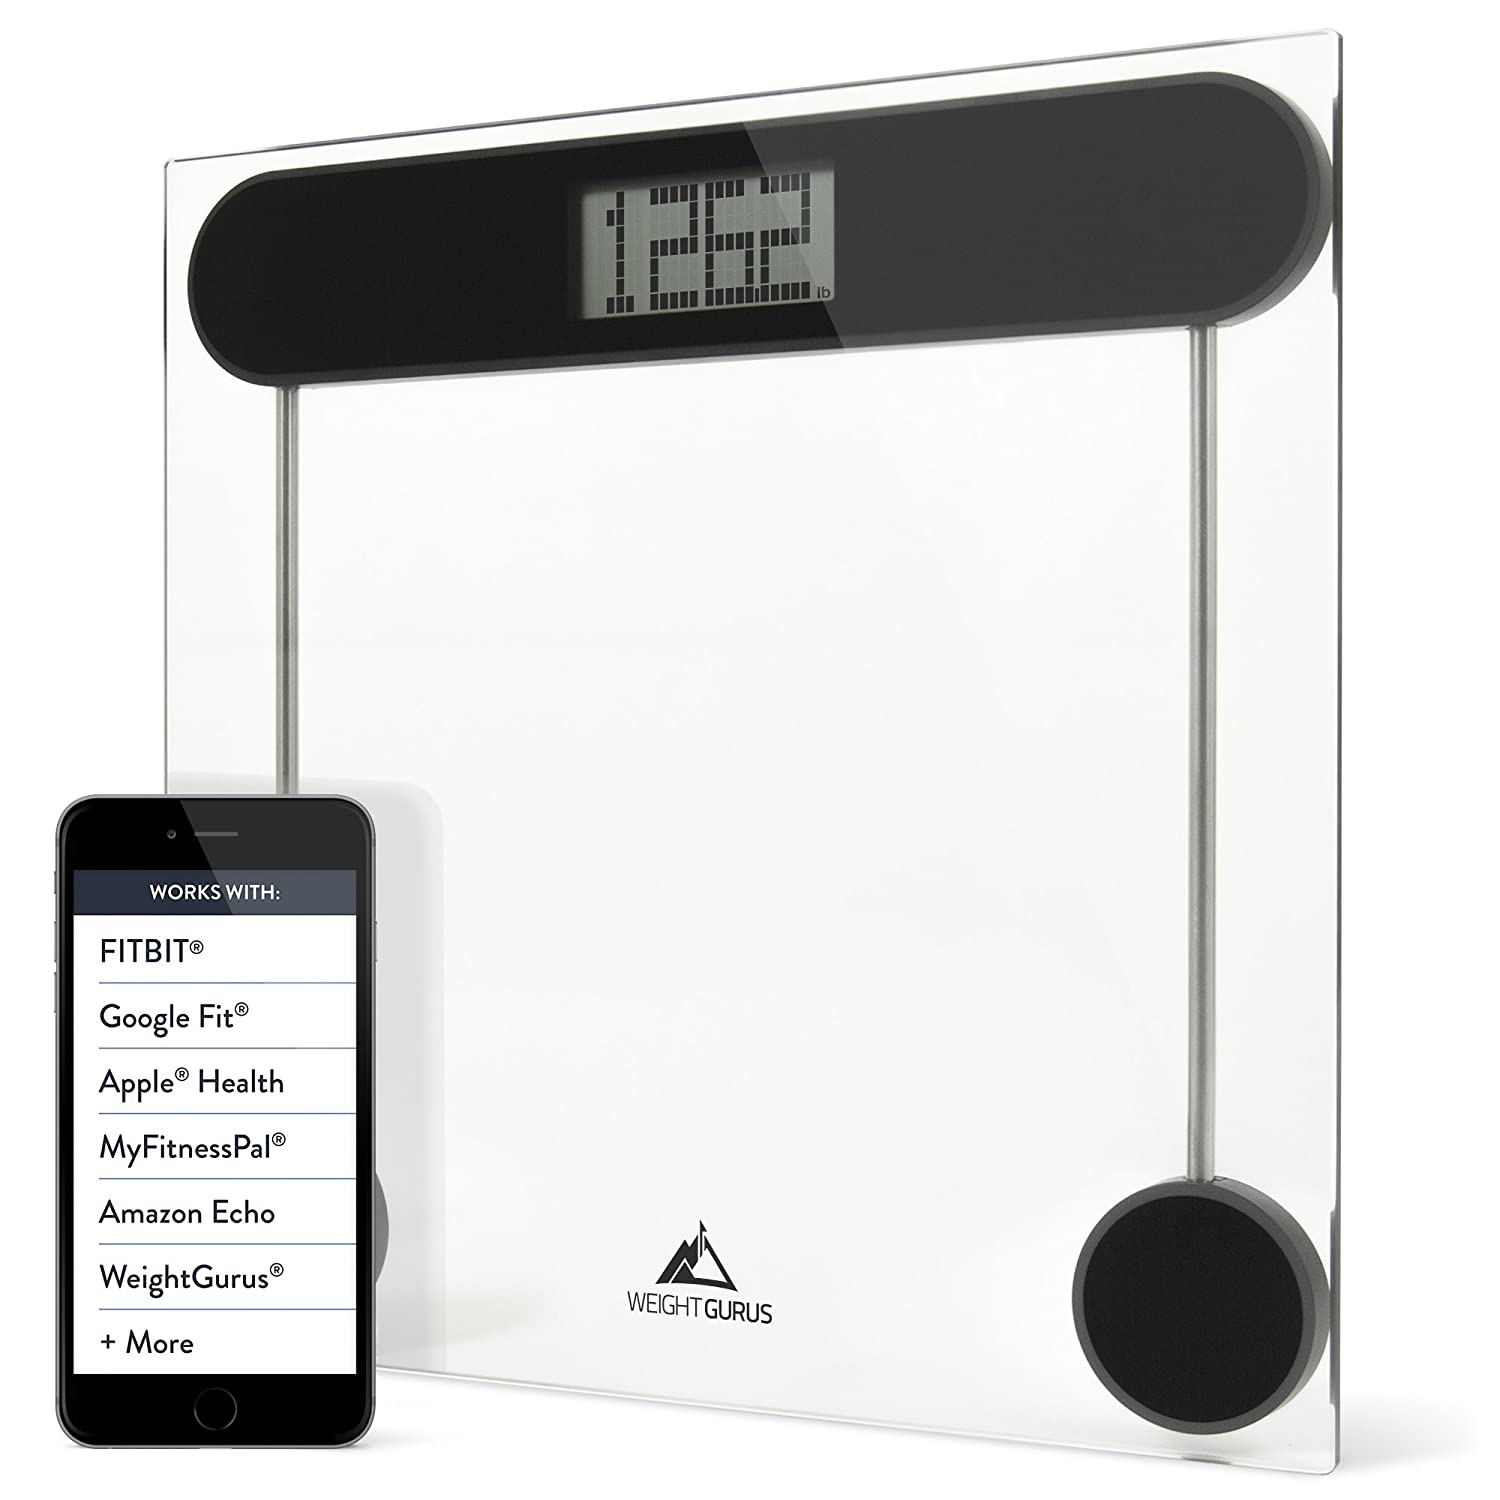 Amazon scale bathroom - Amazon Com Weight Gurus Digital Glass Bathroom Scale Large Display Precision Body Weight Measurement Accurate To 0 1 Of A Pound Batteries Included